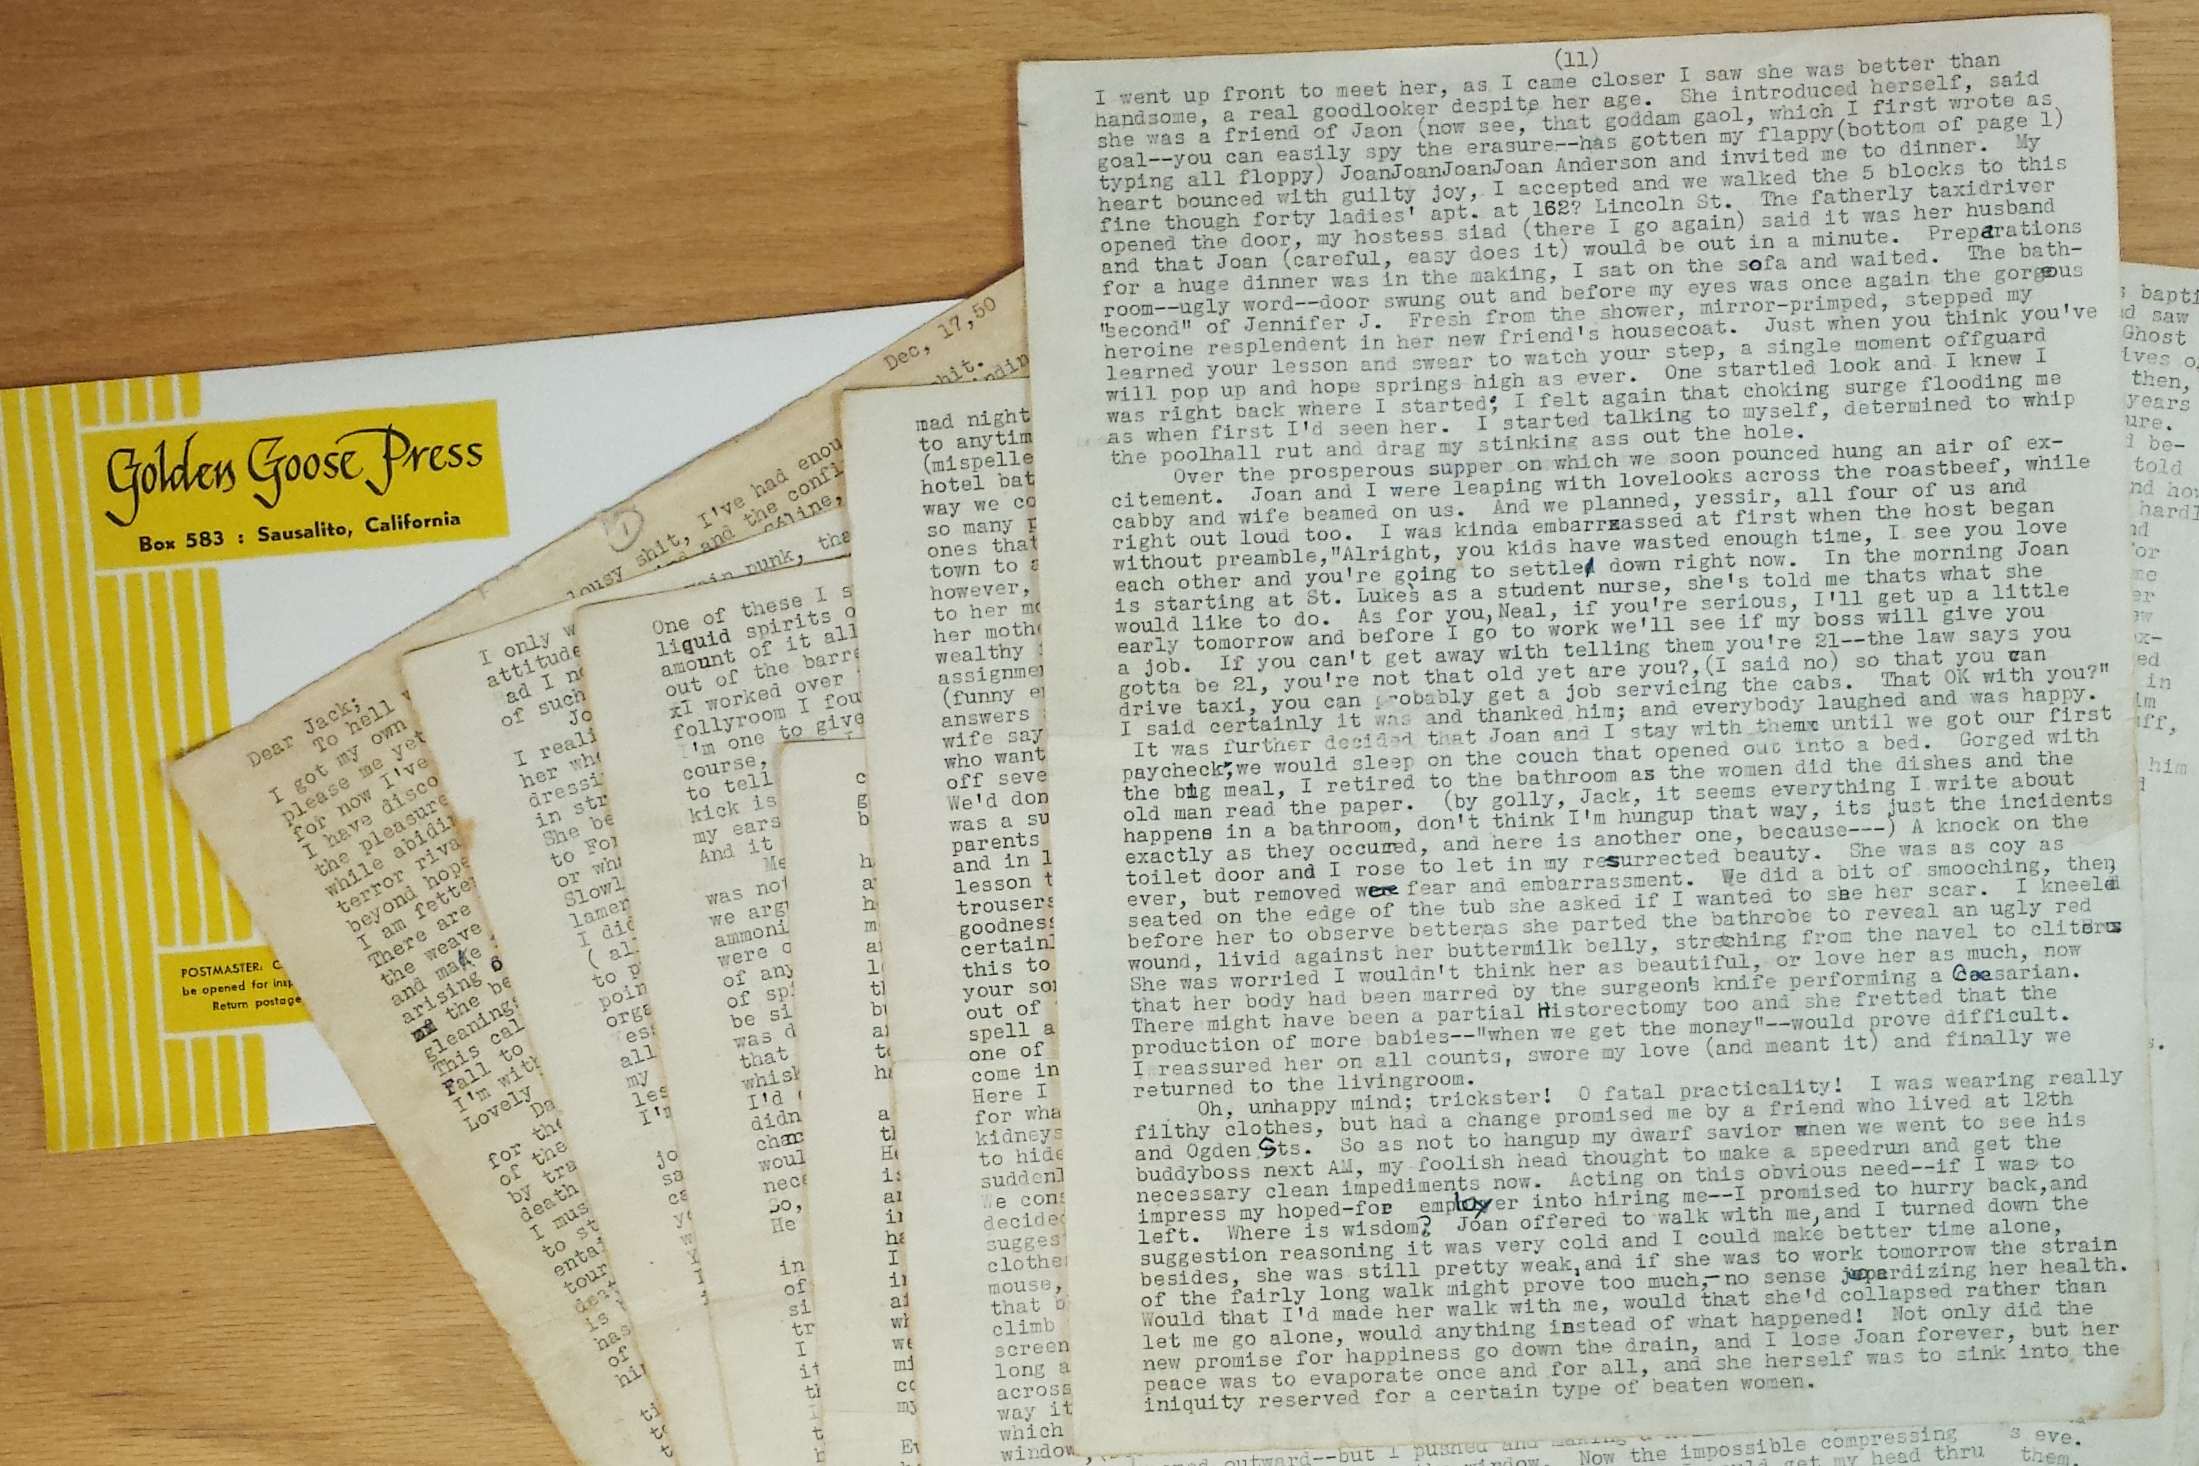 The  Joan Anderson letter,  written from Neal Cassady to Jack Kerouac, is displayed in its entirety for the first time since being discovered, at the Beat Museum in San Francisco on Dec. 1, 2014.